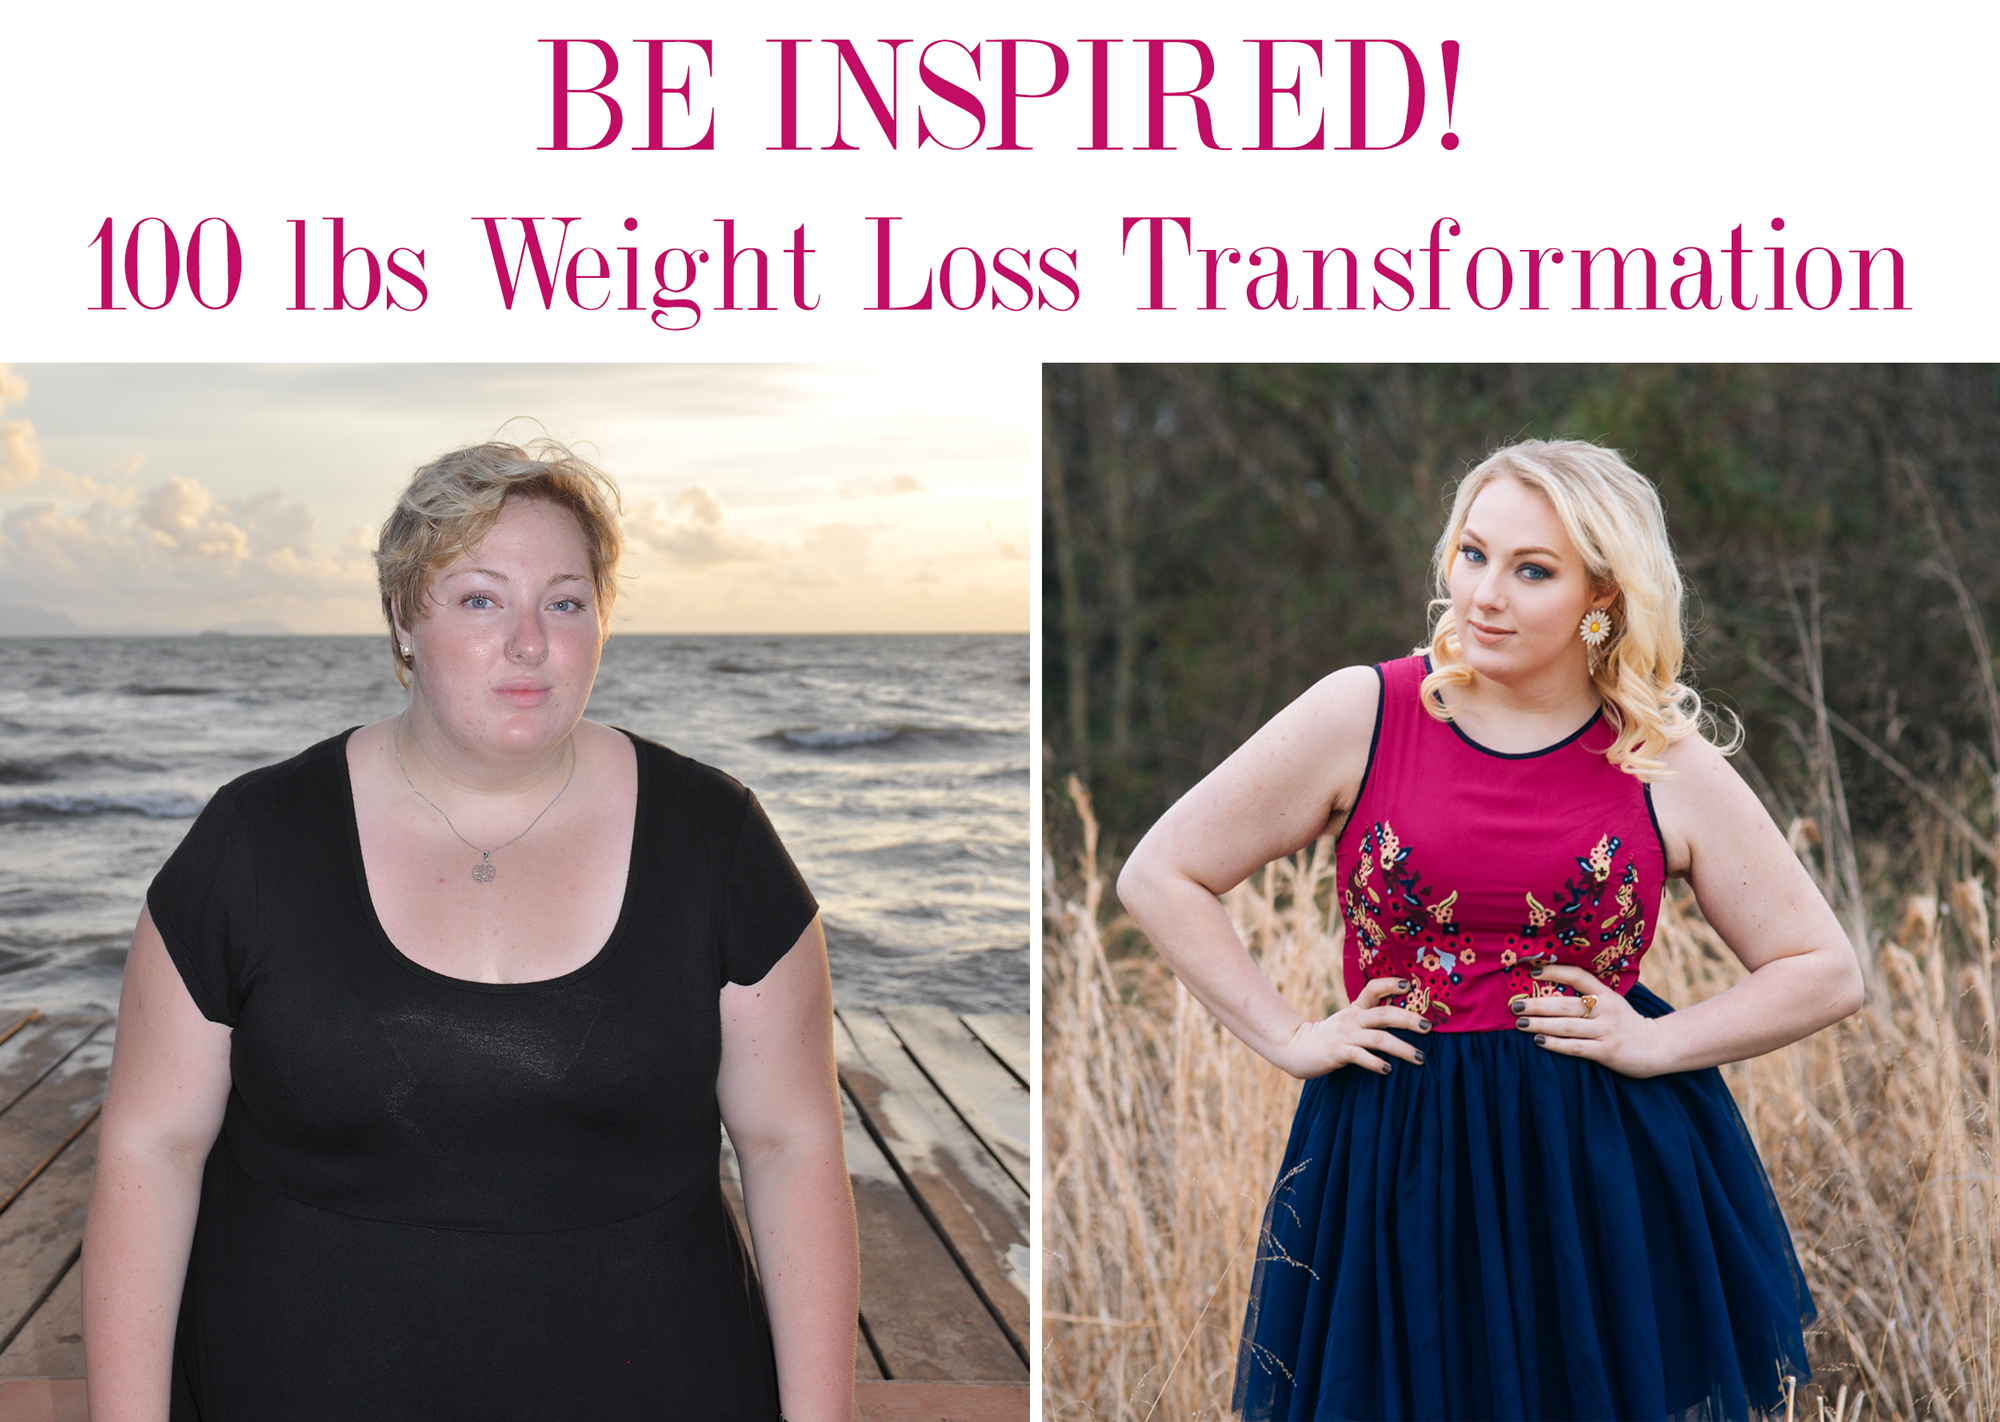 Sarah_Weight_Loss